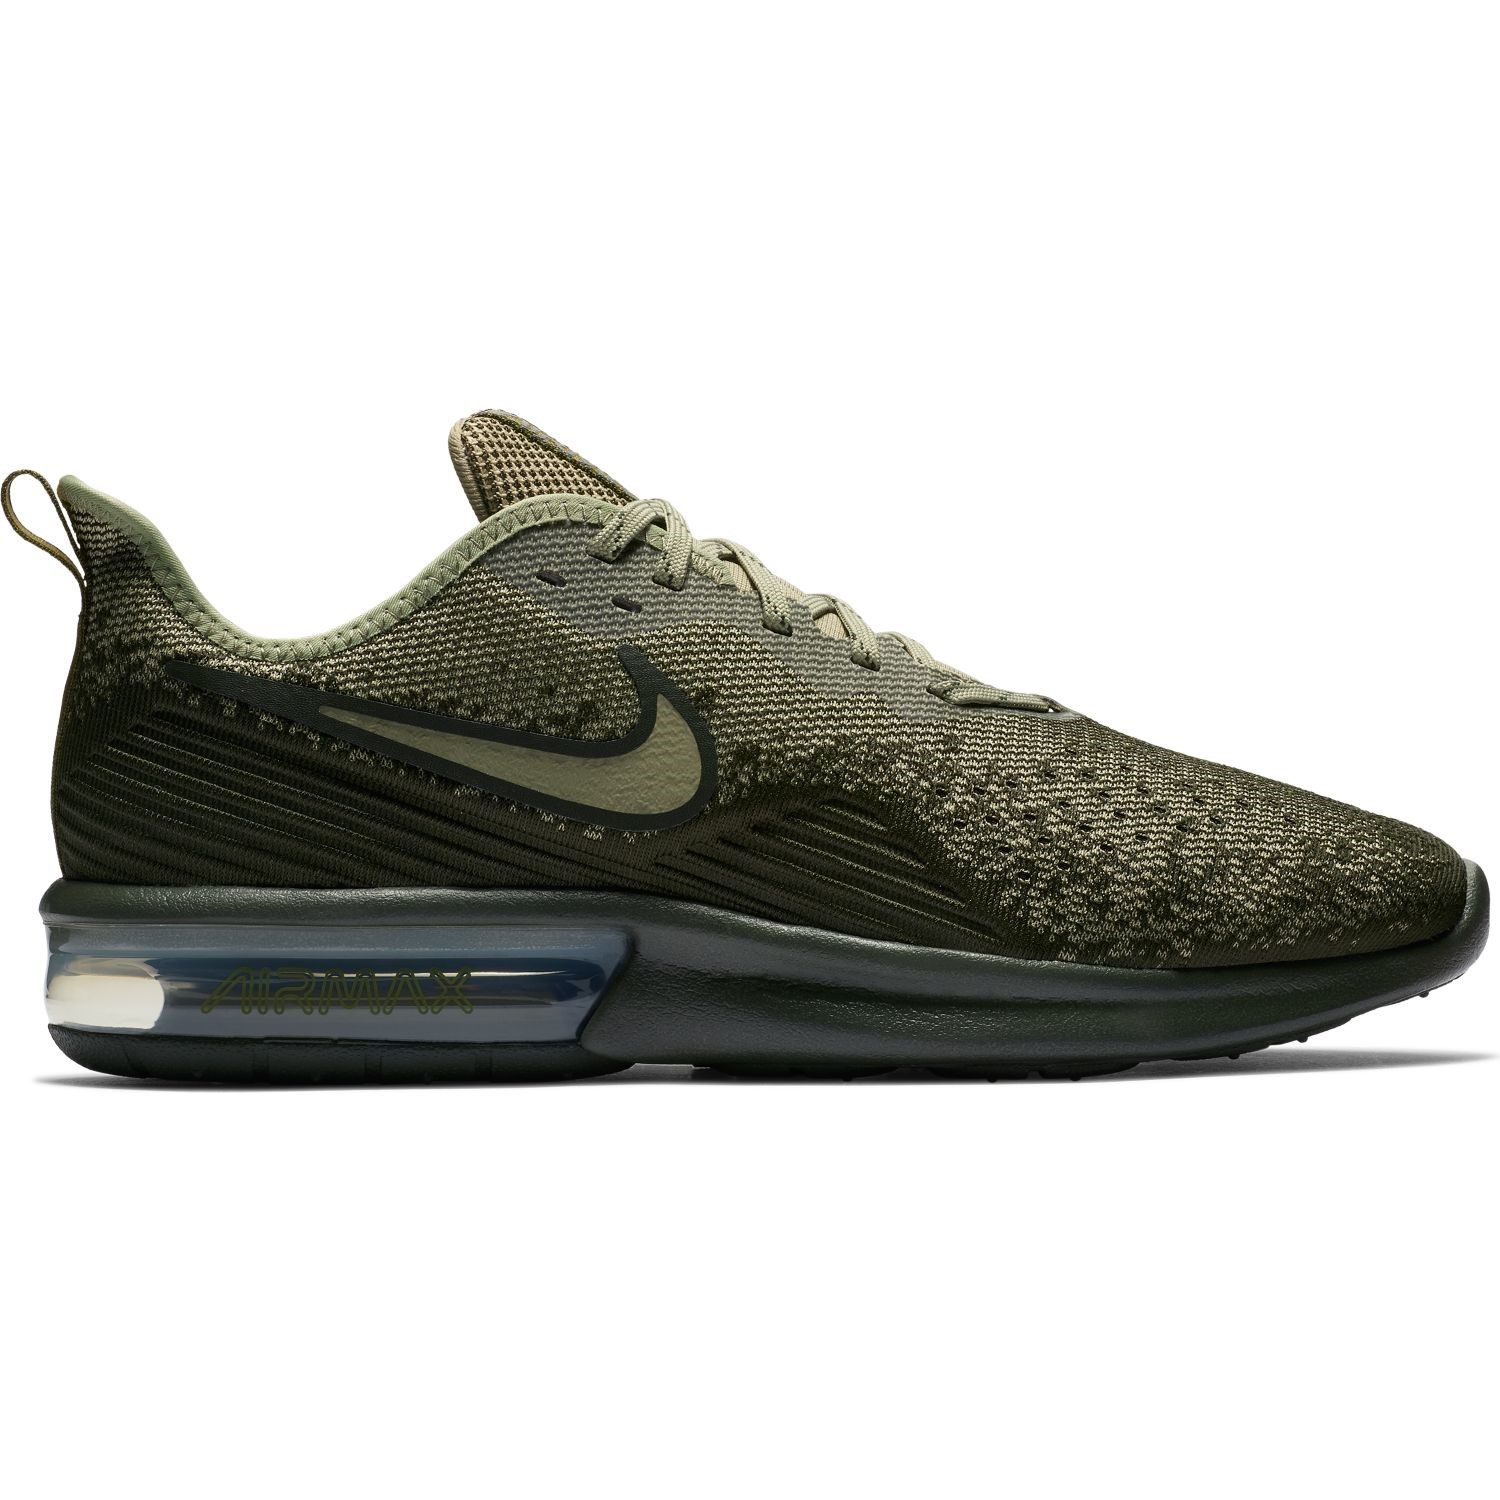 030c94f0419 Nike Air Max Sequent 4 - Mens Sneakers - Cargo Khaki Peat Moss Neutral